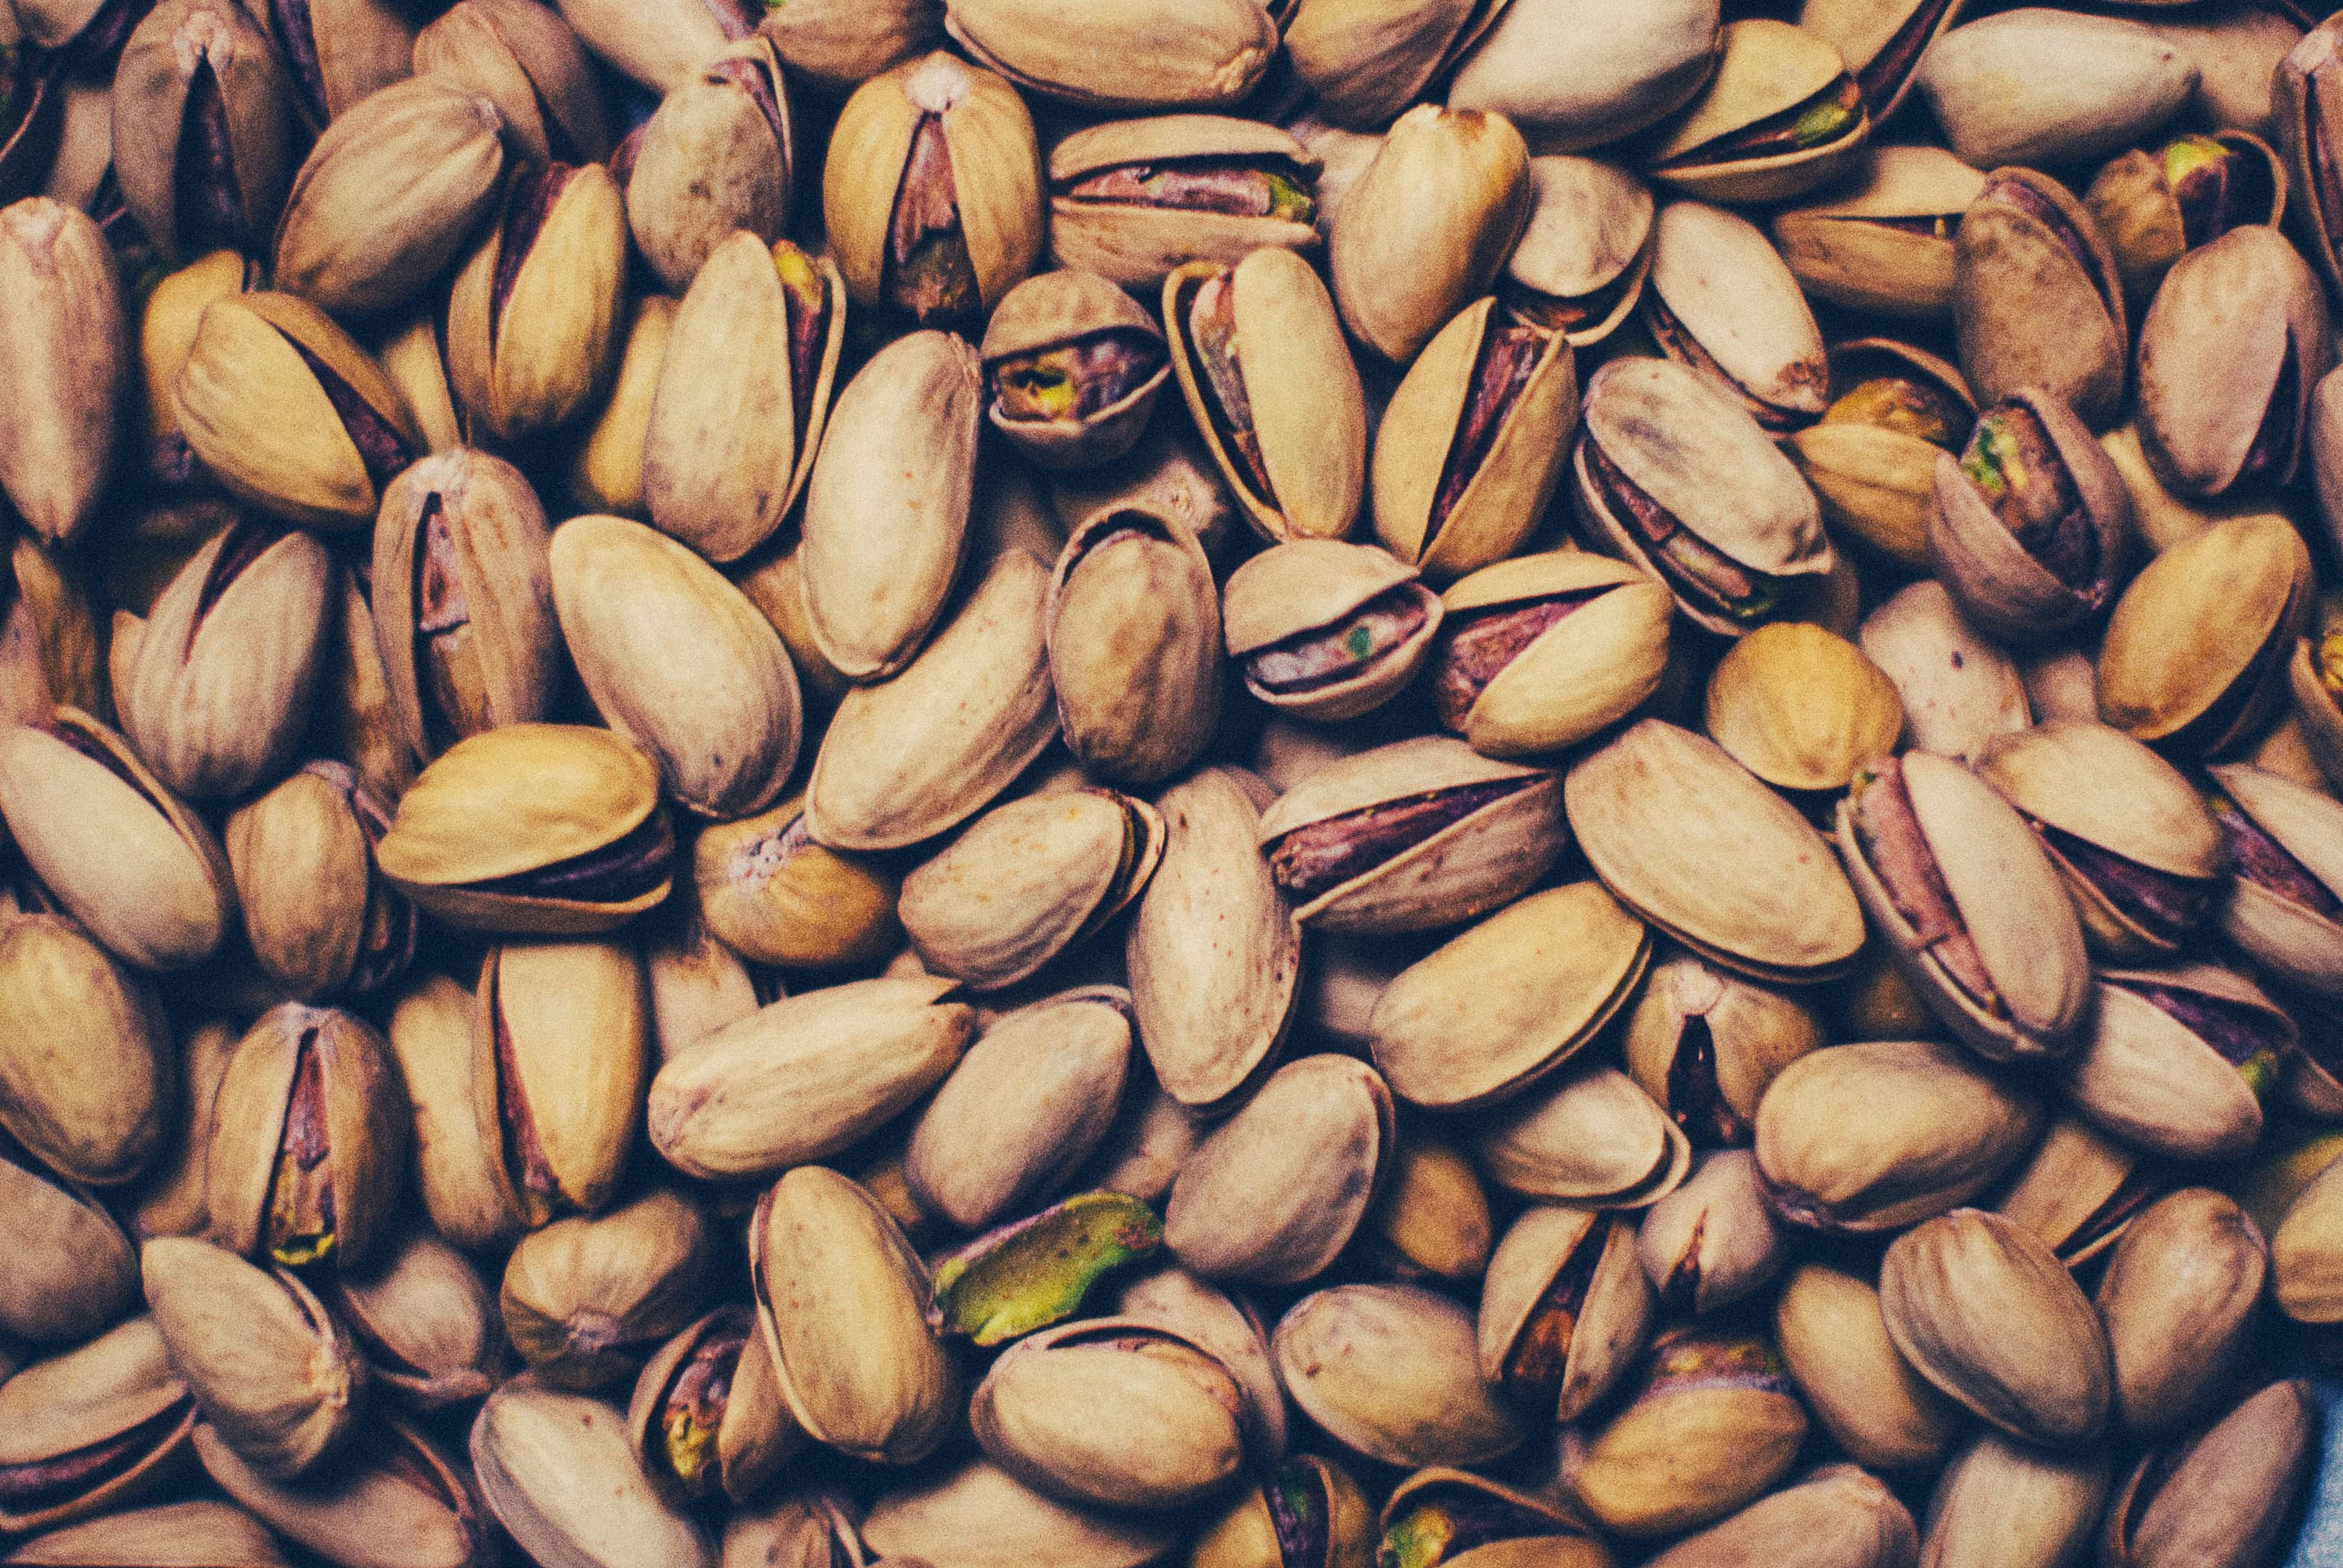 nuts nutritional tips for basketball players